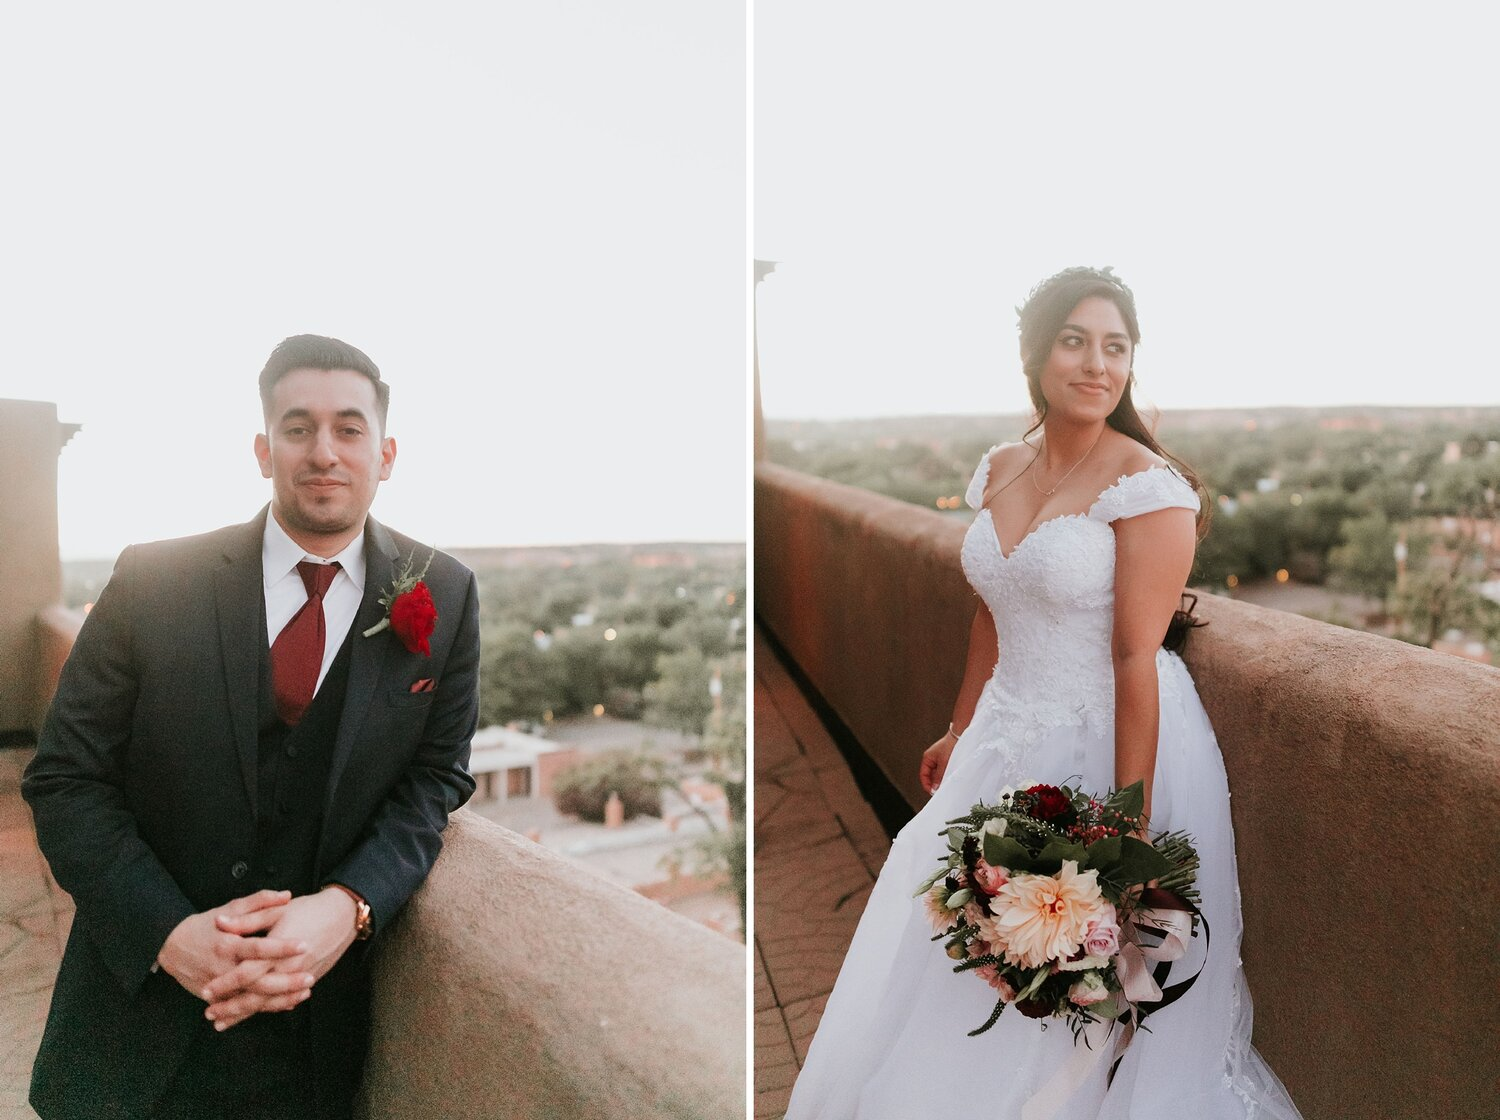 Alicia+lucia+photography+-+albuquerque+wedding+photographer+-+santa+fe+wedding+photography+-+new+mexico+wedding+photographer+-+new+mexico+wedding+-+fall+wedding+-+fall+wedding+florals+-+wedding+florals_0084.jpg